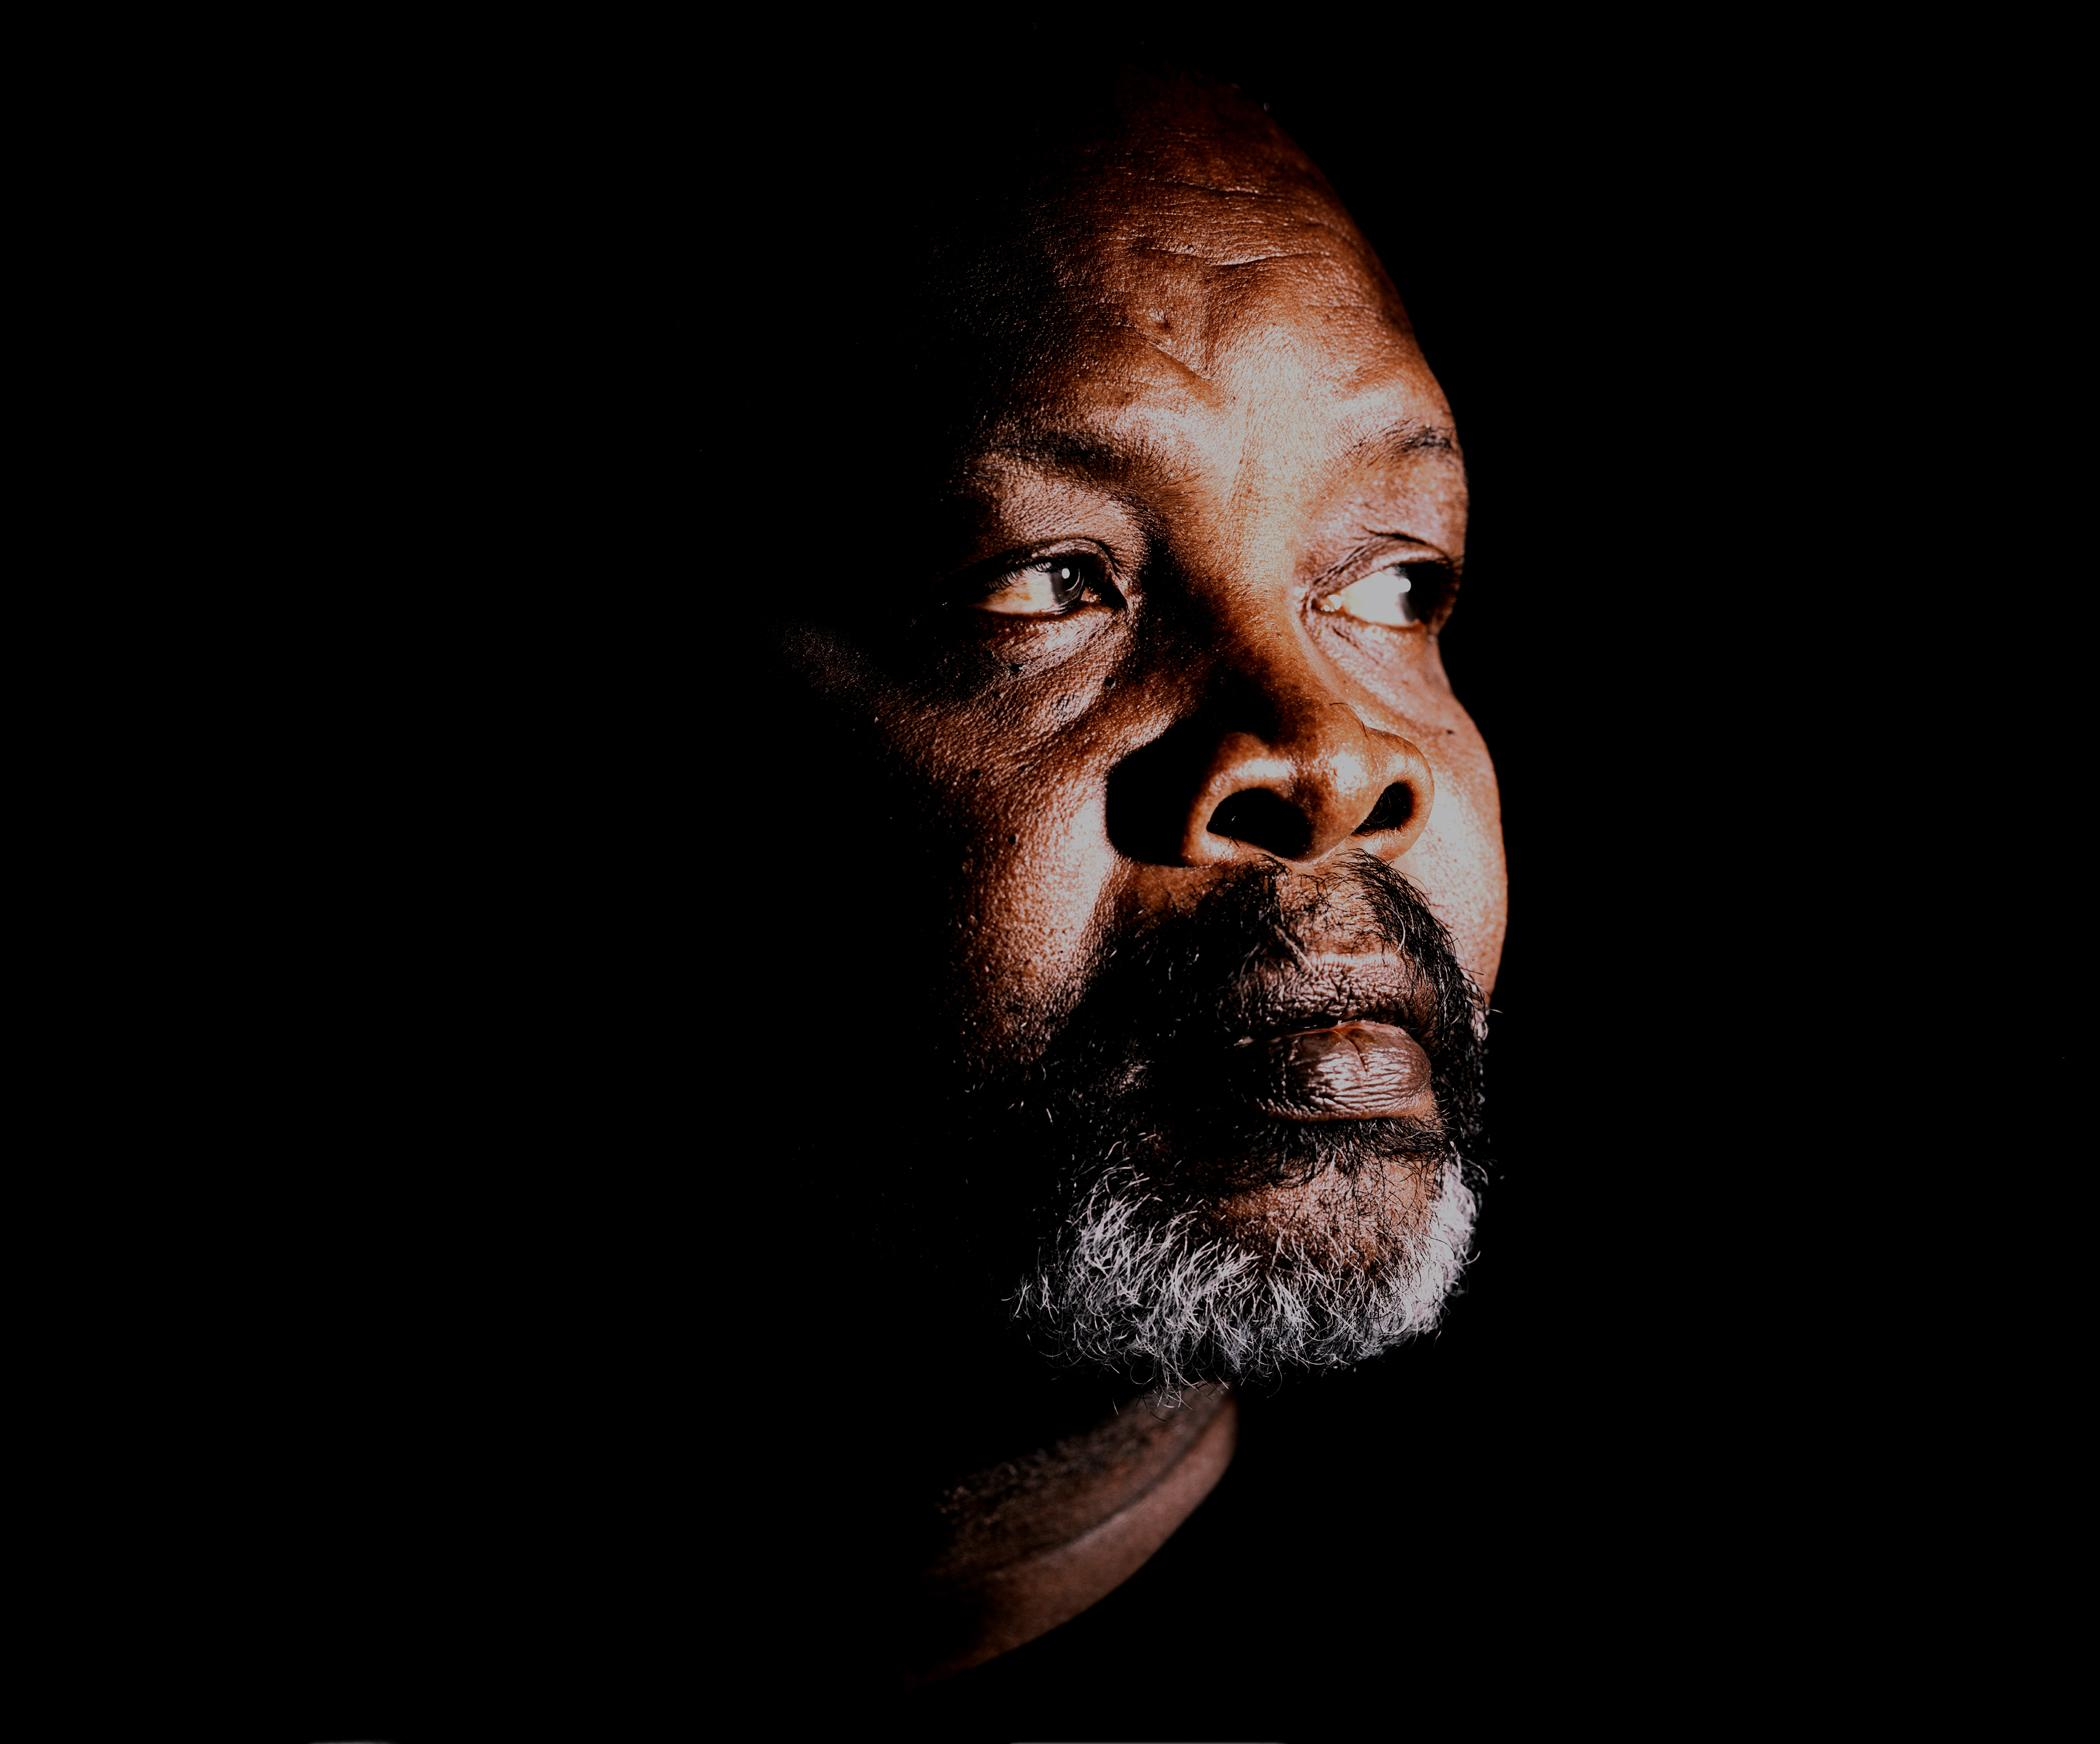 A headshot captures a dark-skinned person with a black mustache and short white beard looking off towards their left, with a black background.